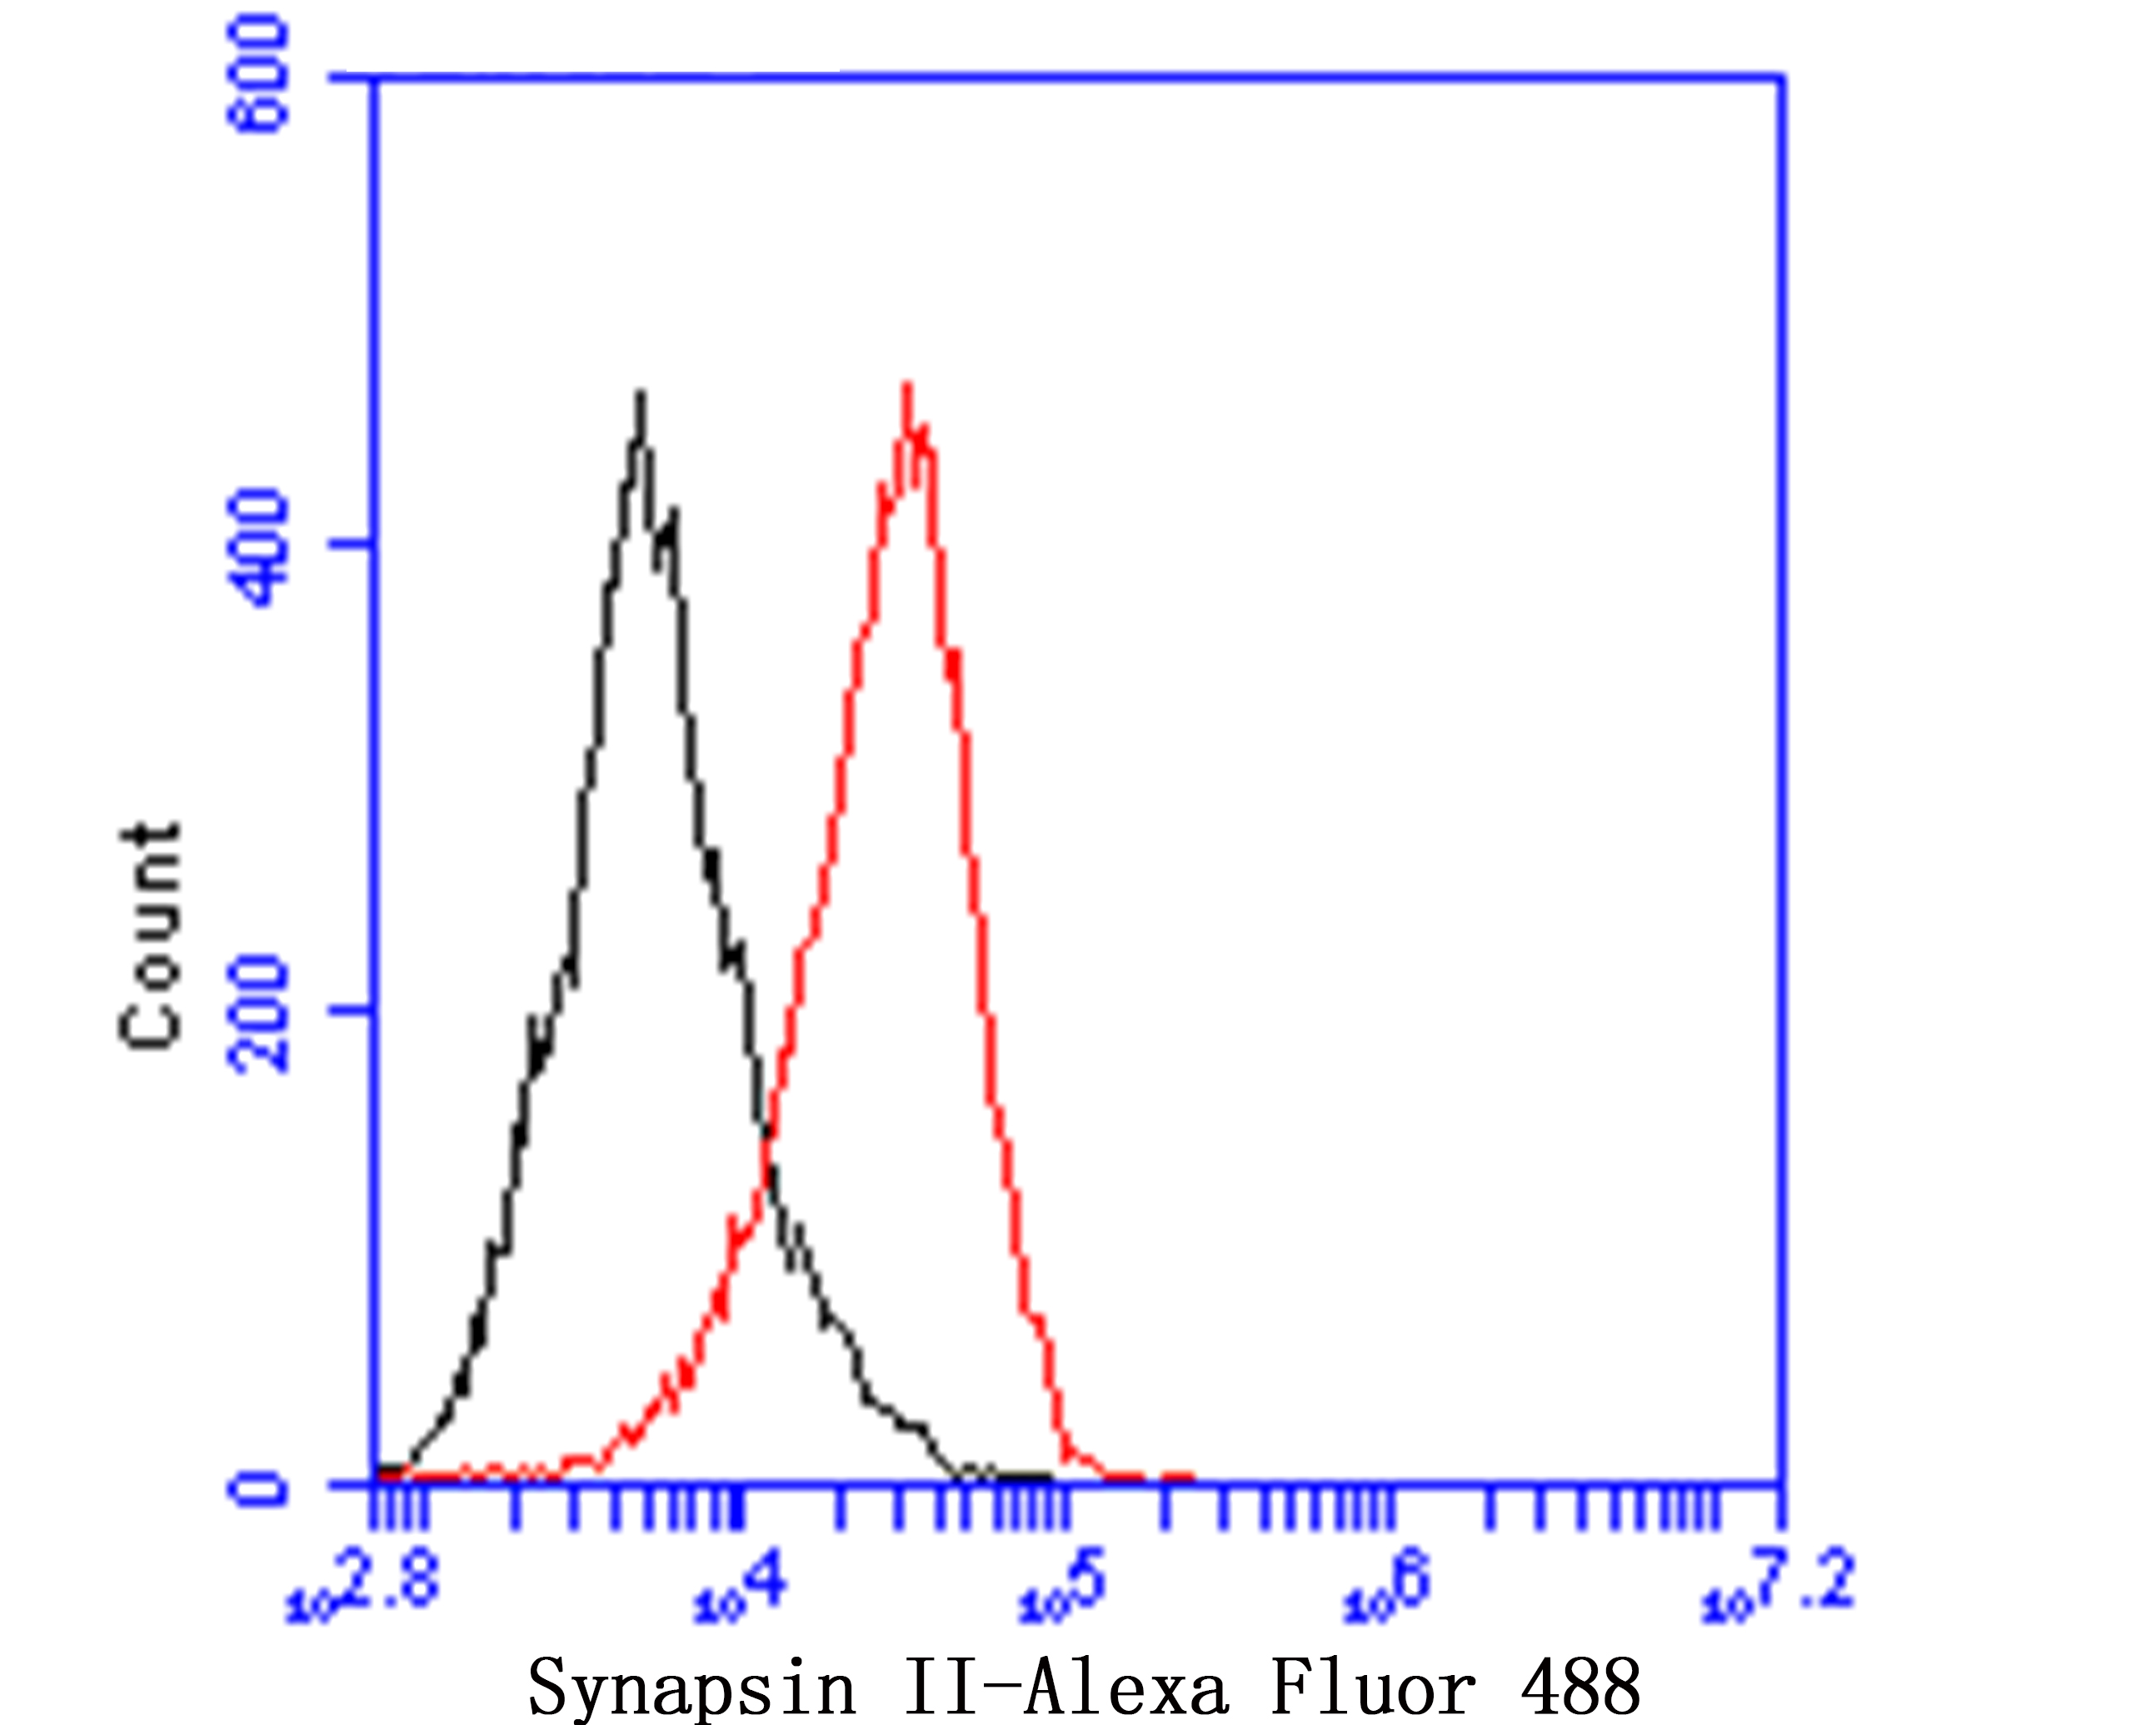 Flow cytometric analysis of Synapsin II was done on F9 cells. The cells were fixed, permeabilized and stained with Synapsin II antibody at 1/100 dilution (red) compared with an unlabelled control (cells without incubation with primary antibody; black). After incubation of the primary antibody on room temperature for an hour, the cells was stained with a Alexa Fluor™ 488-conjugated goat anti-rabbit IgG Secondary antibody at 1/500 dilution for 30 minutes.